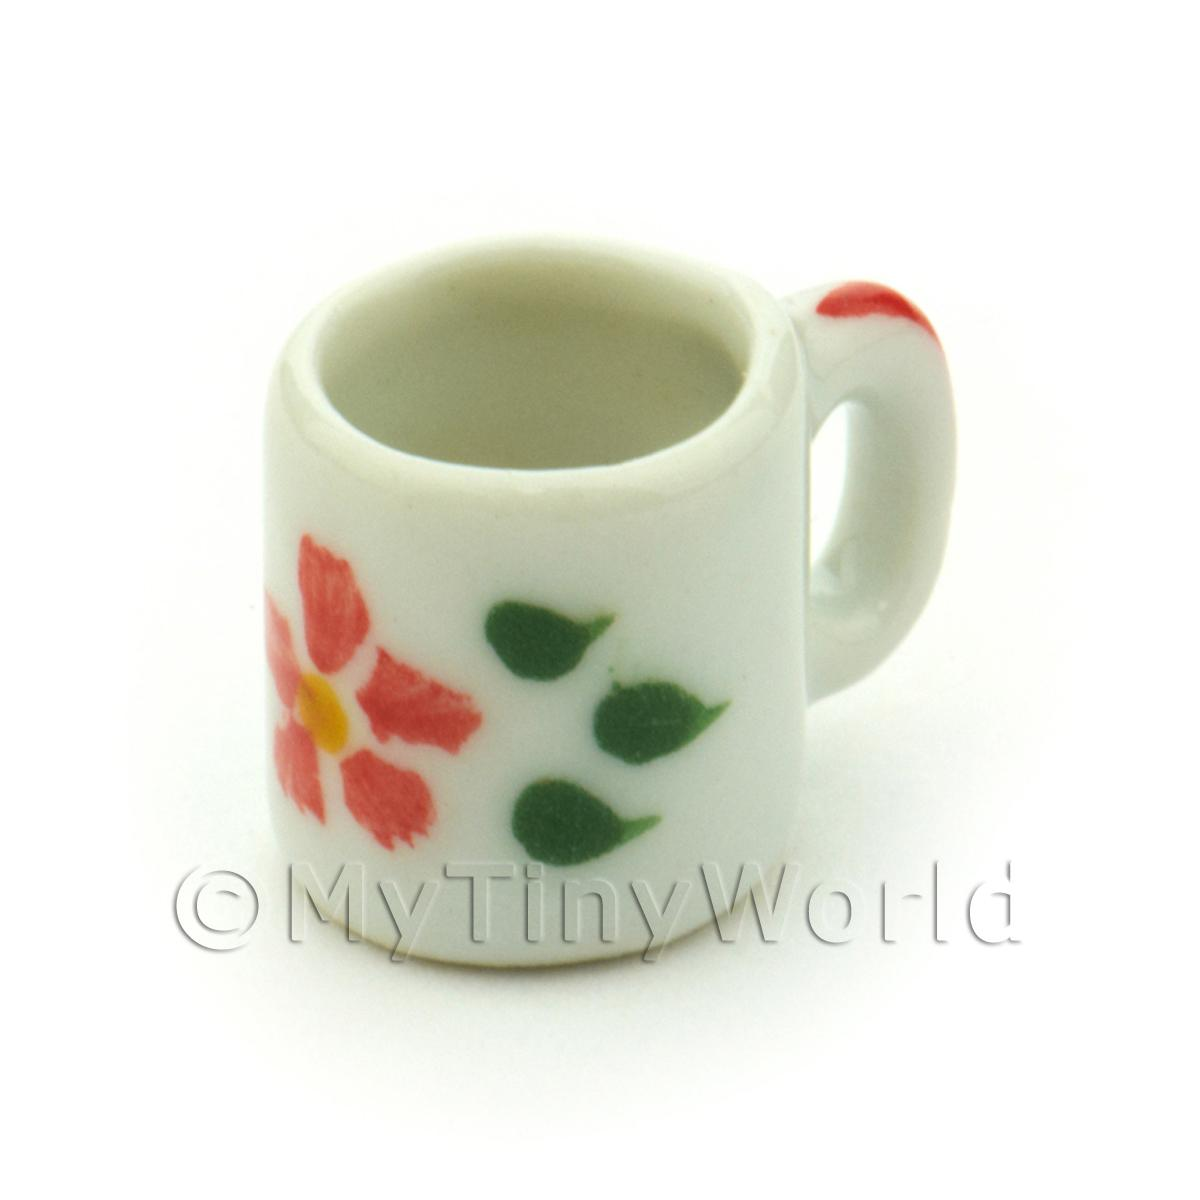 Dolls House Miniature Hibiscus Design Ceramic Coffee Mug